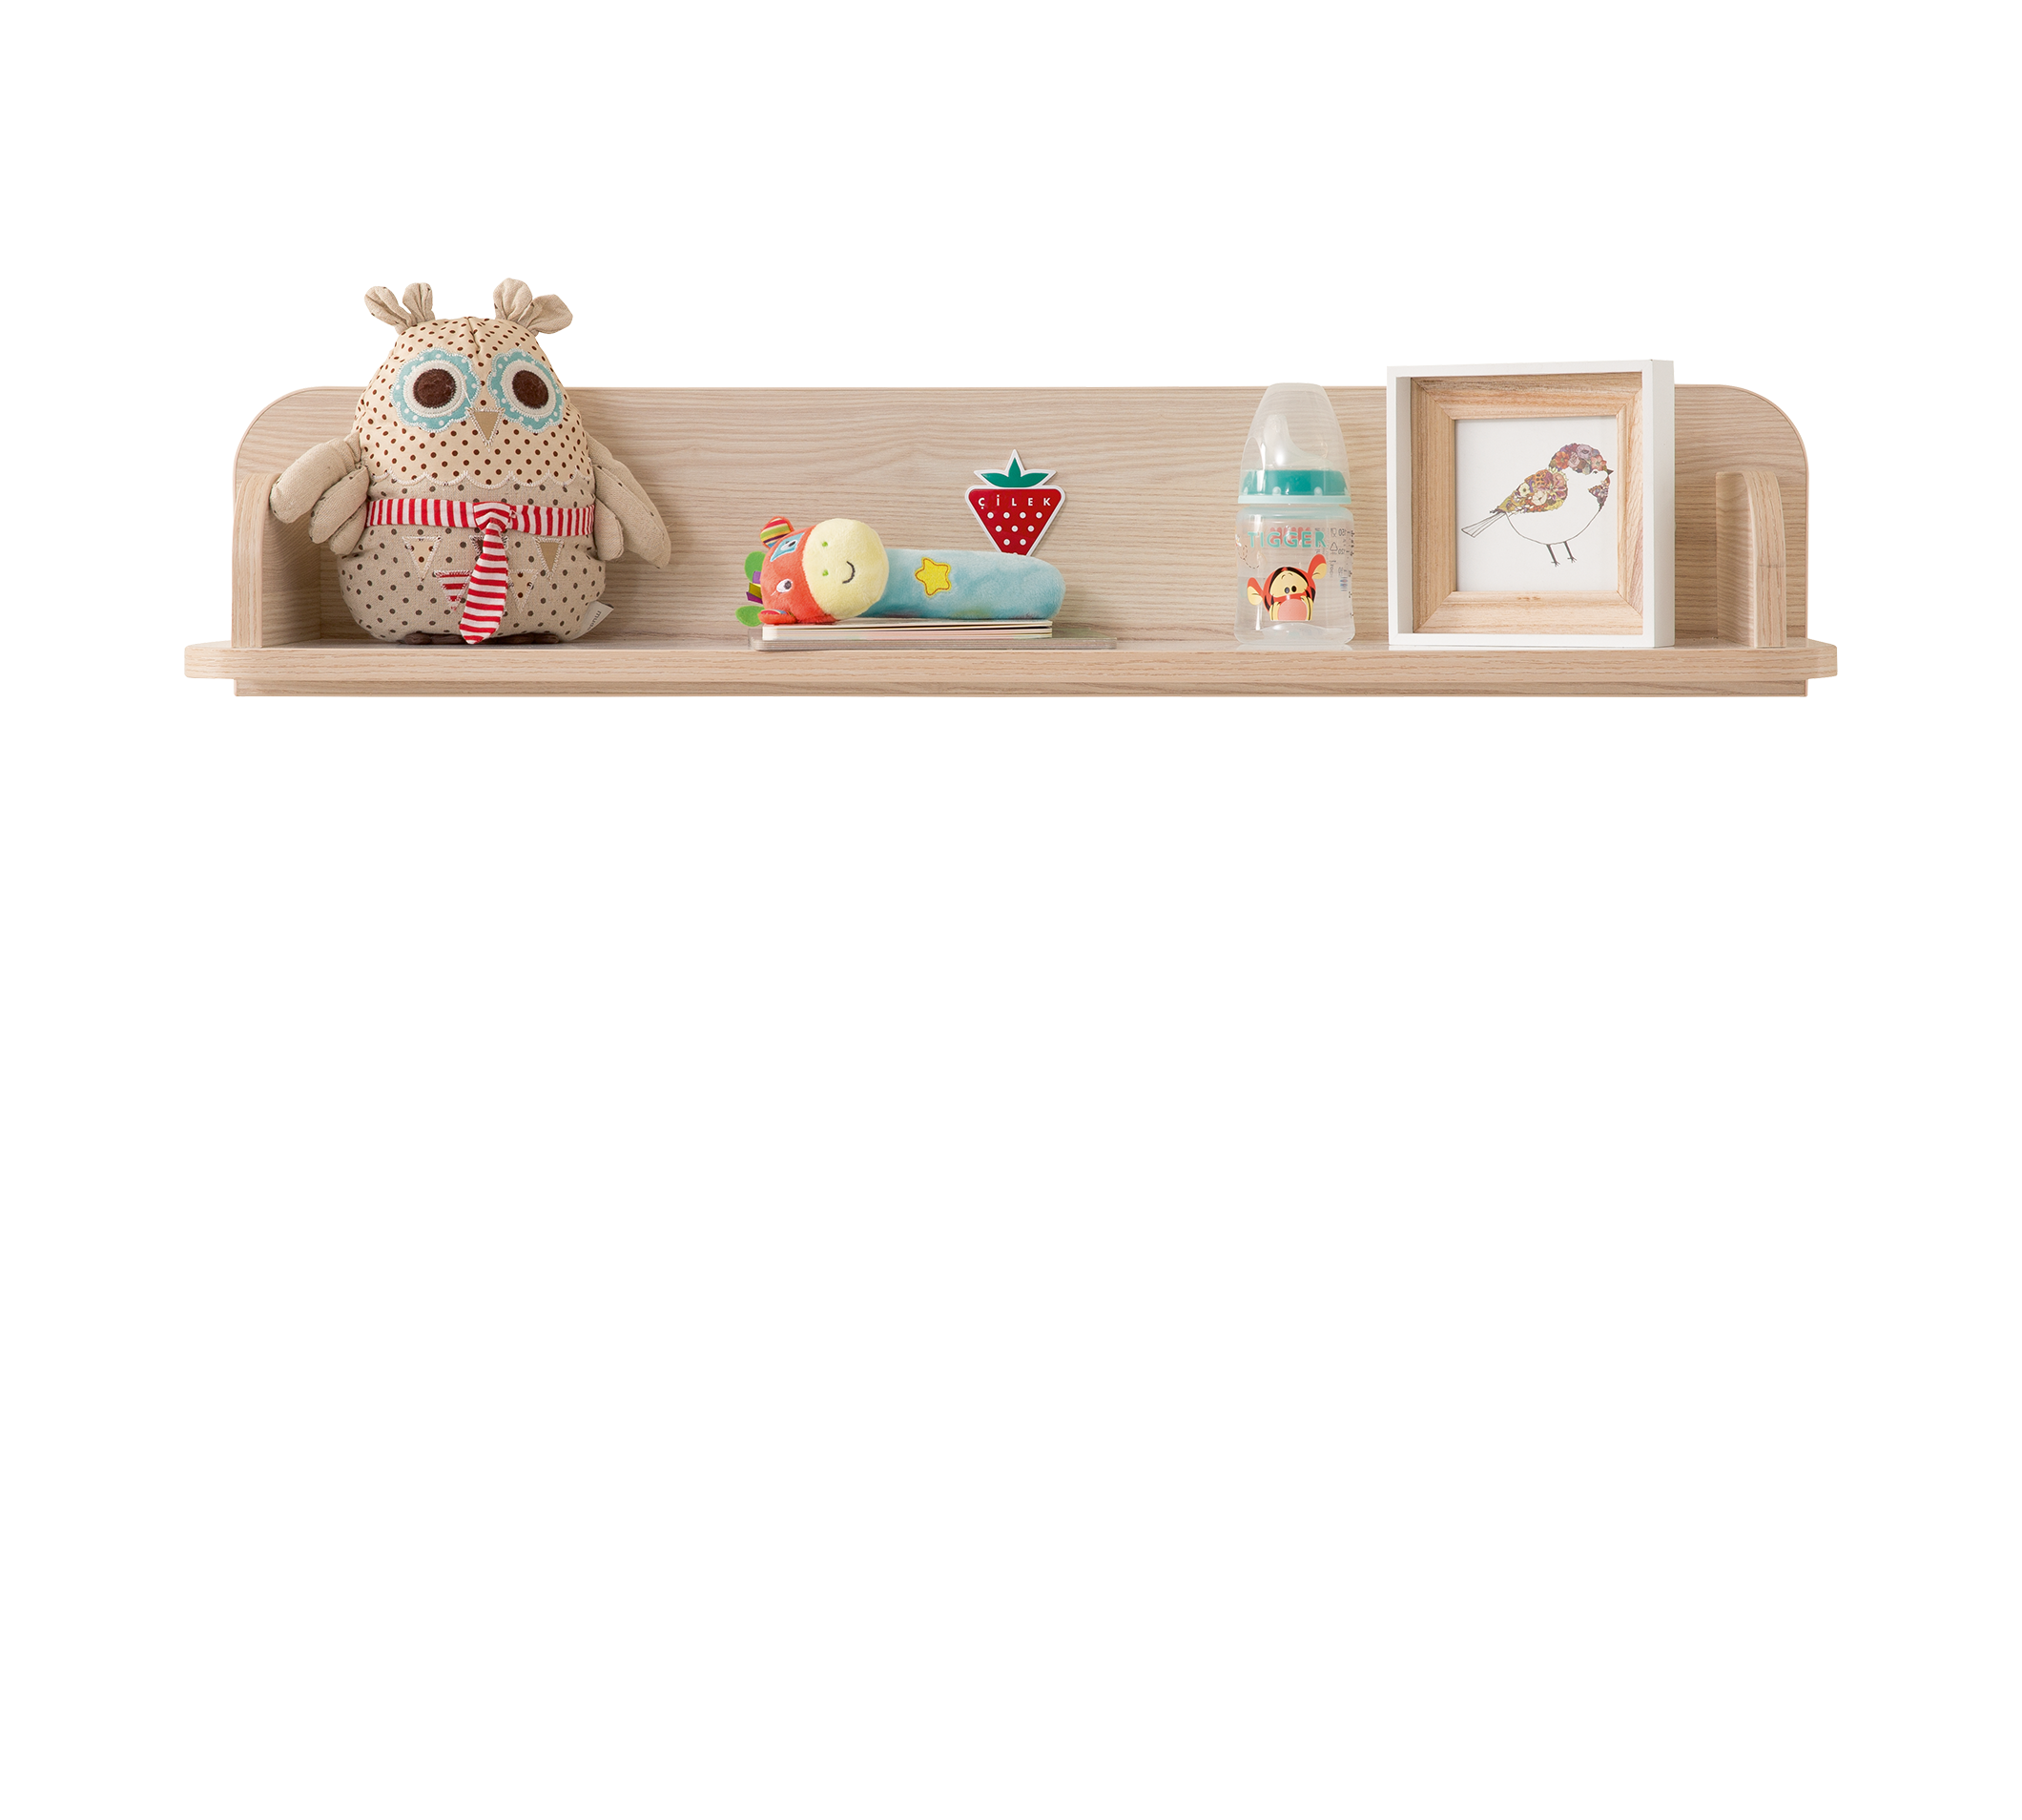 Etajera din pal, pentru bebe Montessori Baby Natural, l86xA18xH17 cm imagine